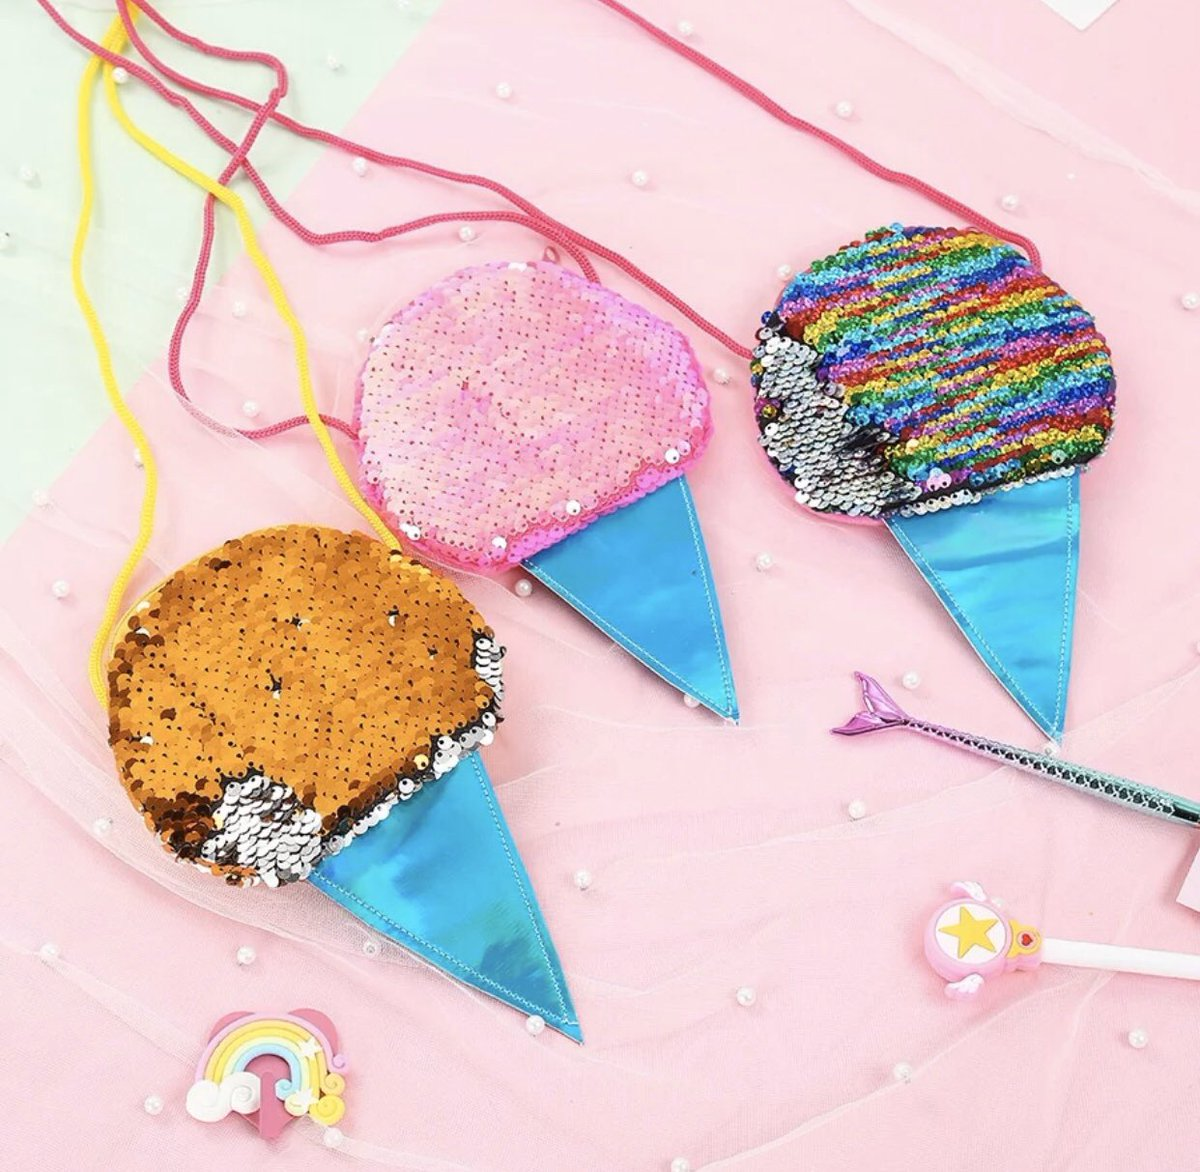 We all scream for these Ice Cream purses for the littles.   Little Pink Mermaid. Whimsical, fun, sweet & sassy pretties for little girls. Our online shop opens soon. . #littlepinkmermaid #kidsfashion #kids #girlythings #girls #girly #accessories #icecream #pursepic.twitter.com/UtRZM6Suhw